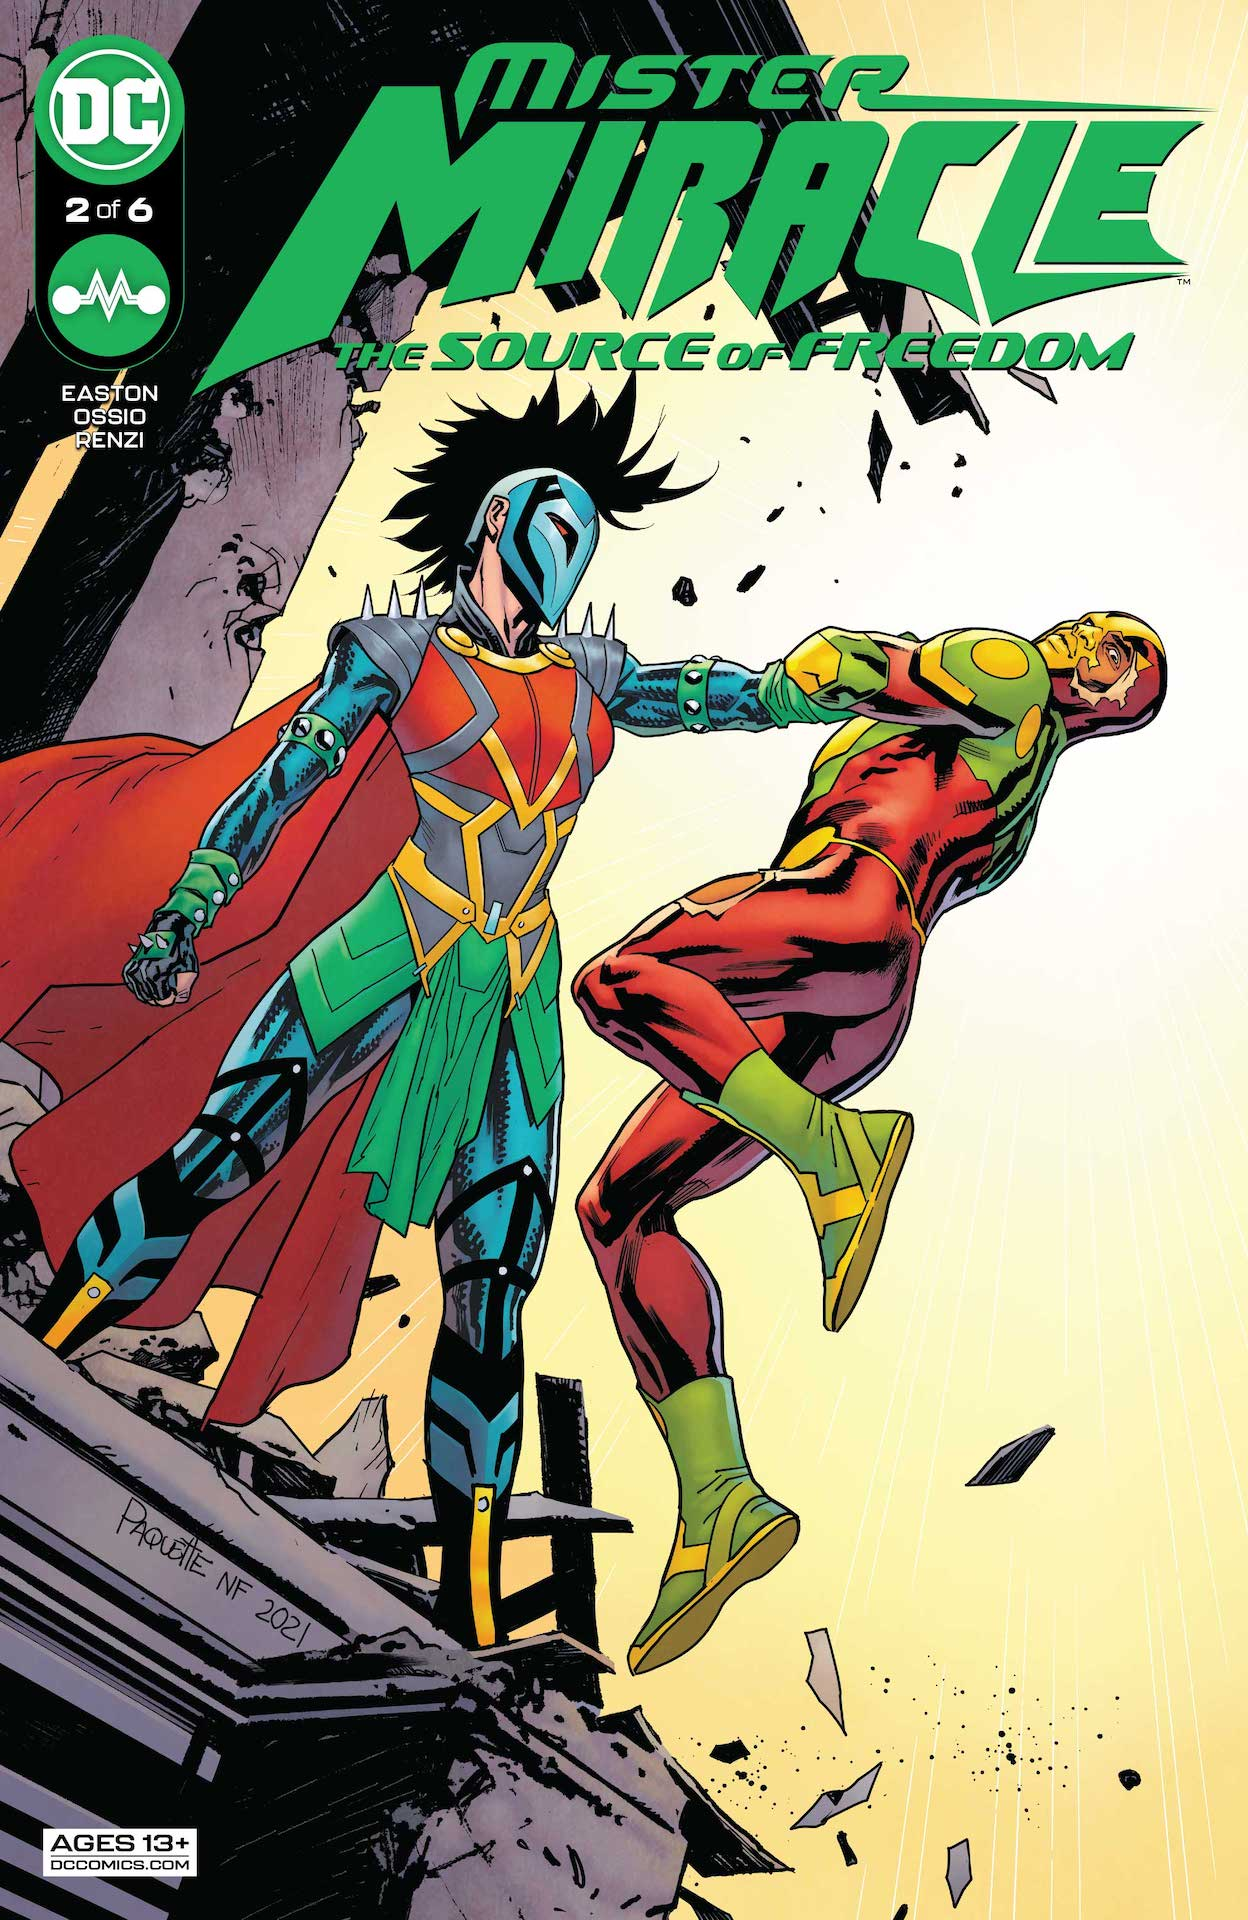 Mister-Miracle-The-Source-of-Freedom-2-1